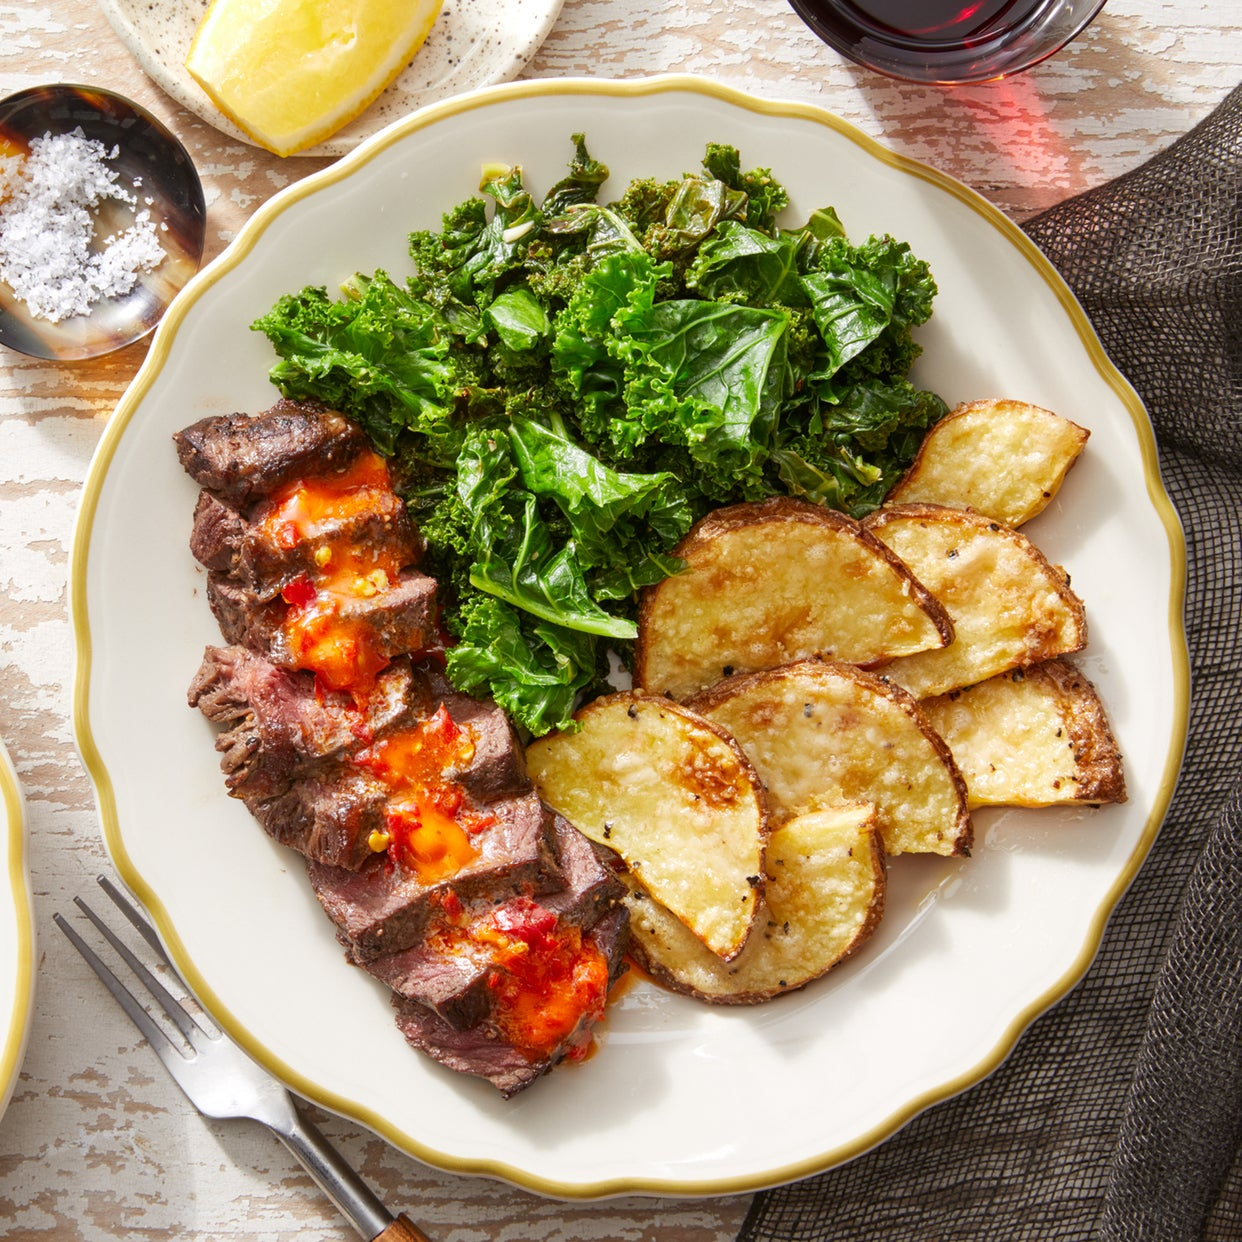 Seared Steaks & Garlic Kale with Cheesy Roasted Potatoes